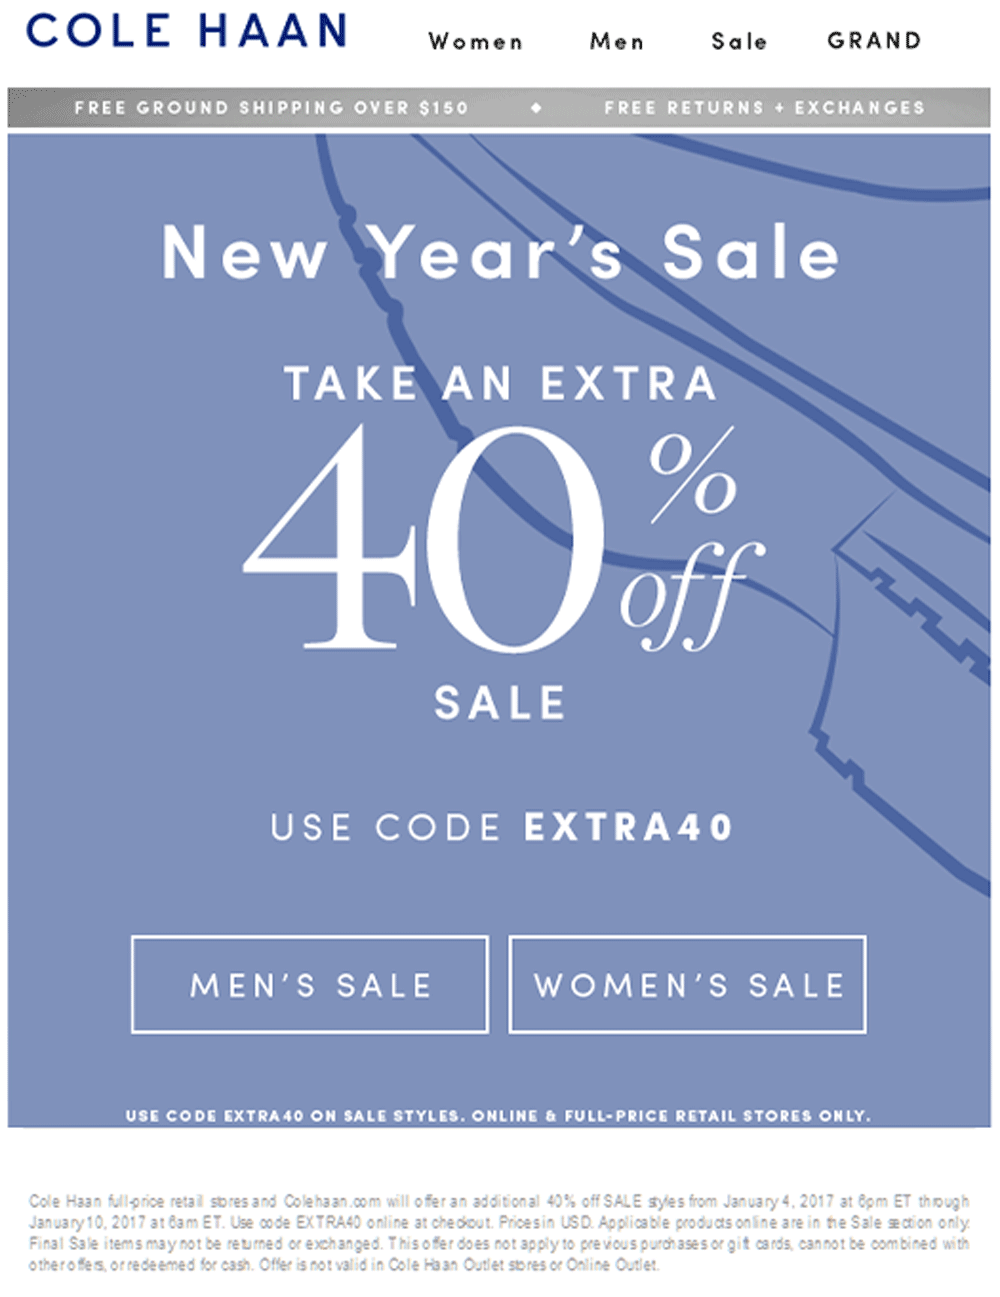 Cole Haan 🆓 Coupons & Shopping Deals! Shopping coupons